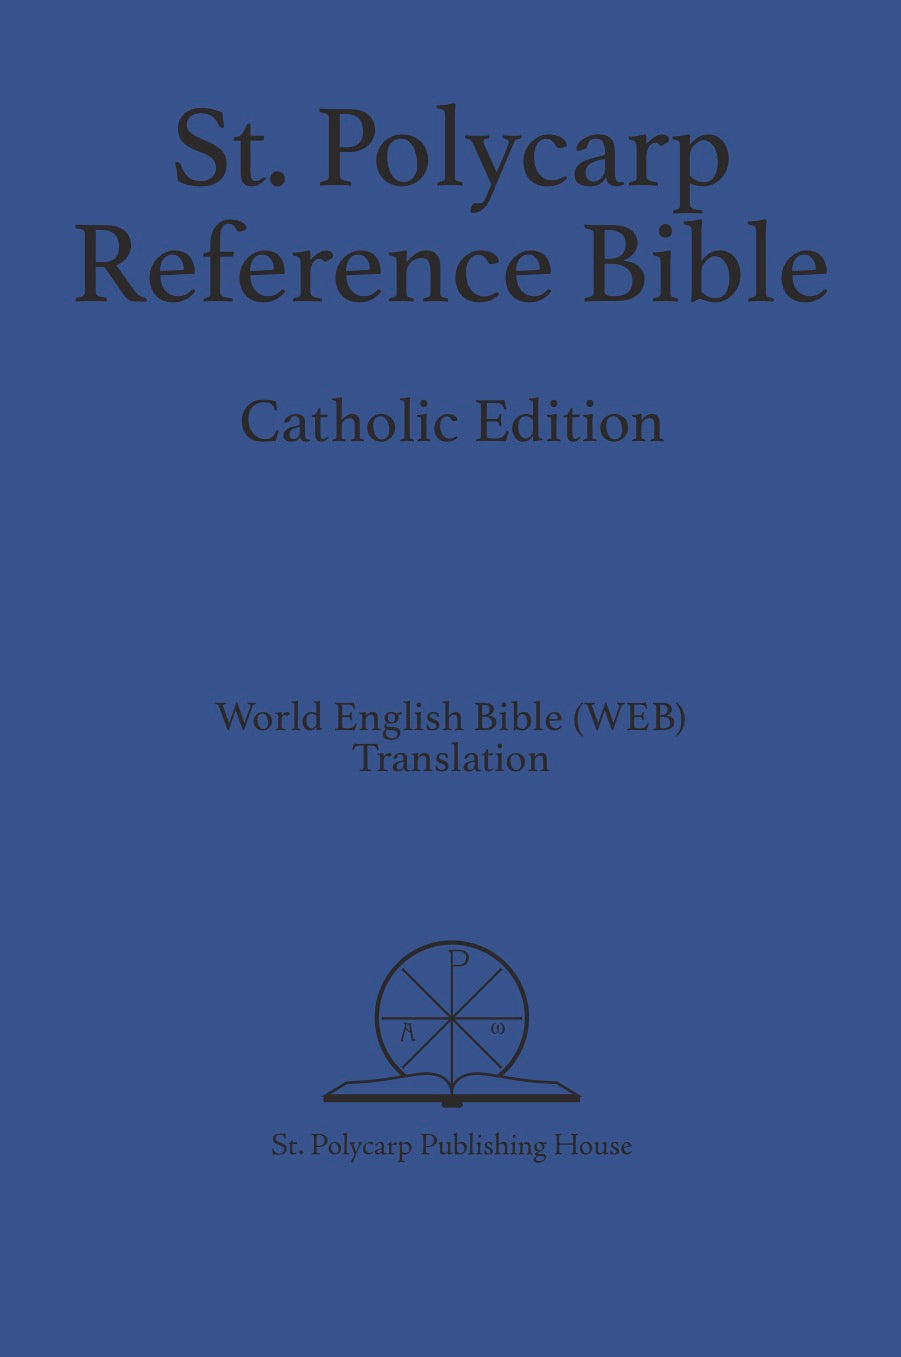 St. Polycarp Reference Bible: Catholic Edition (Paperback)